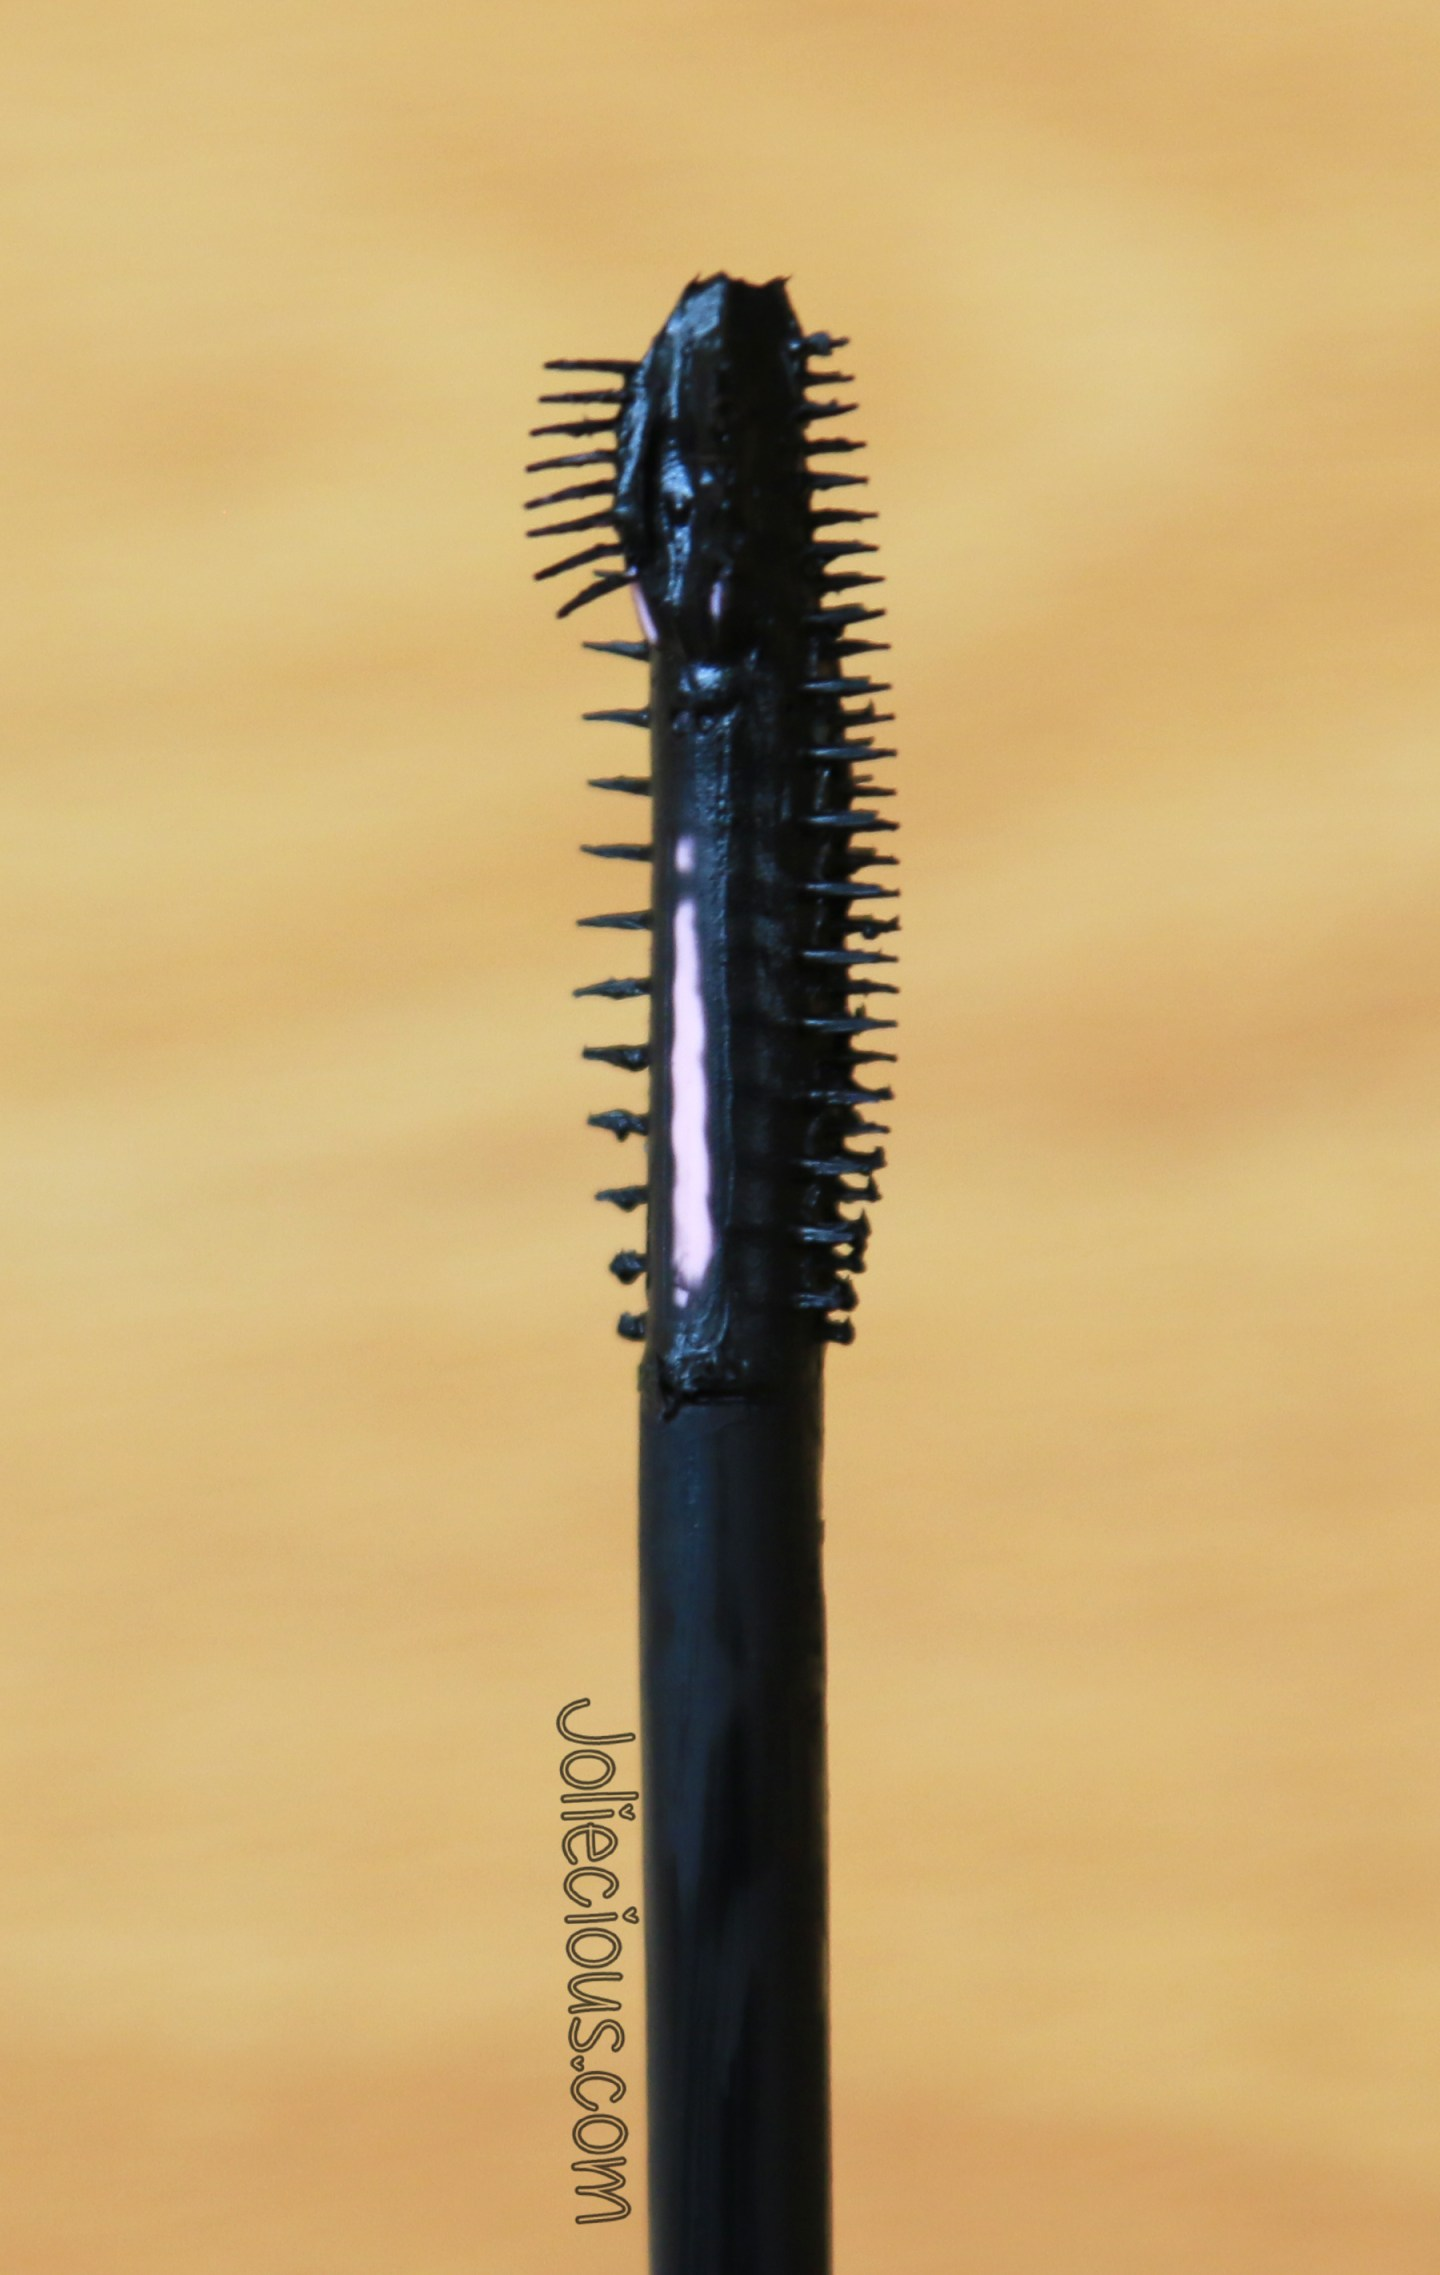 CoverGirl Total Tease Mascara - wand; Best Drugstore Mascara